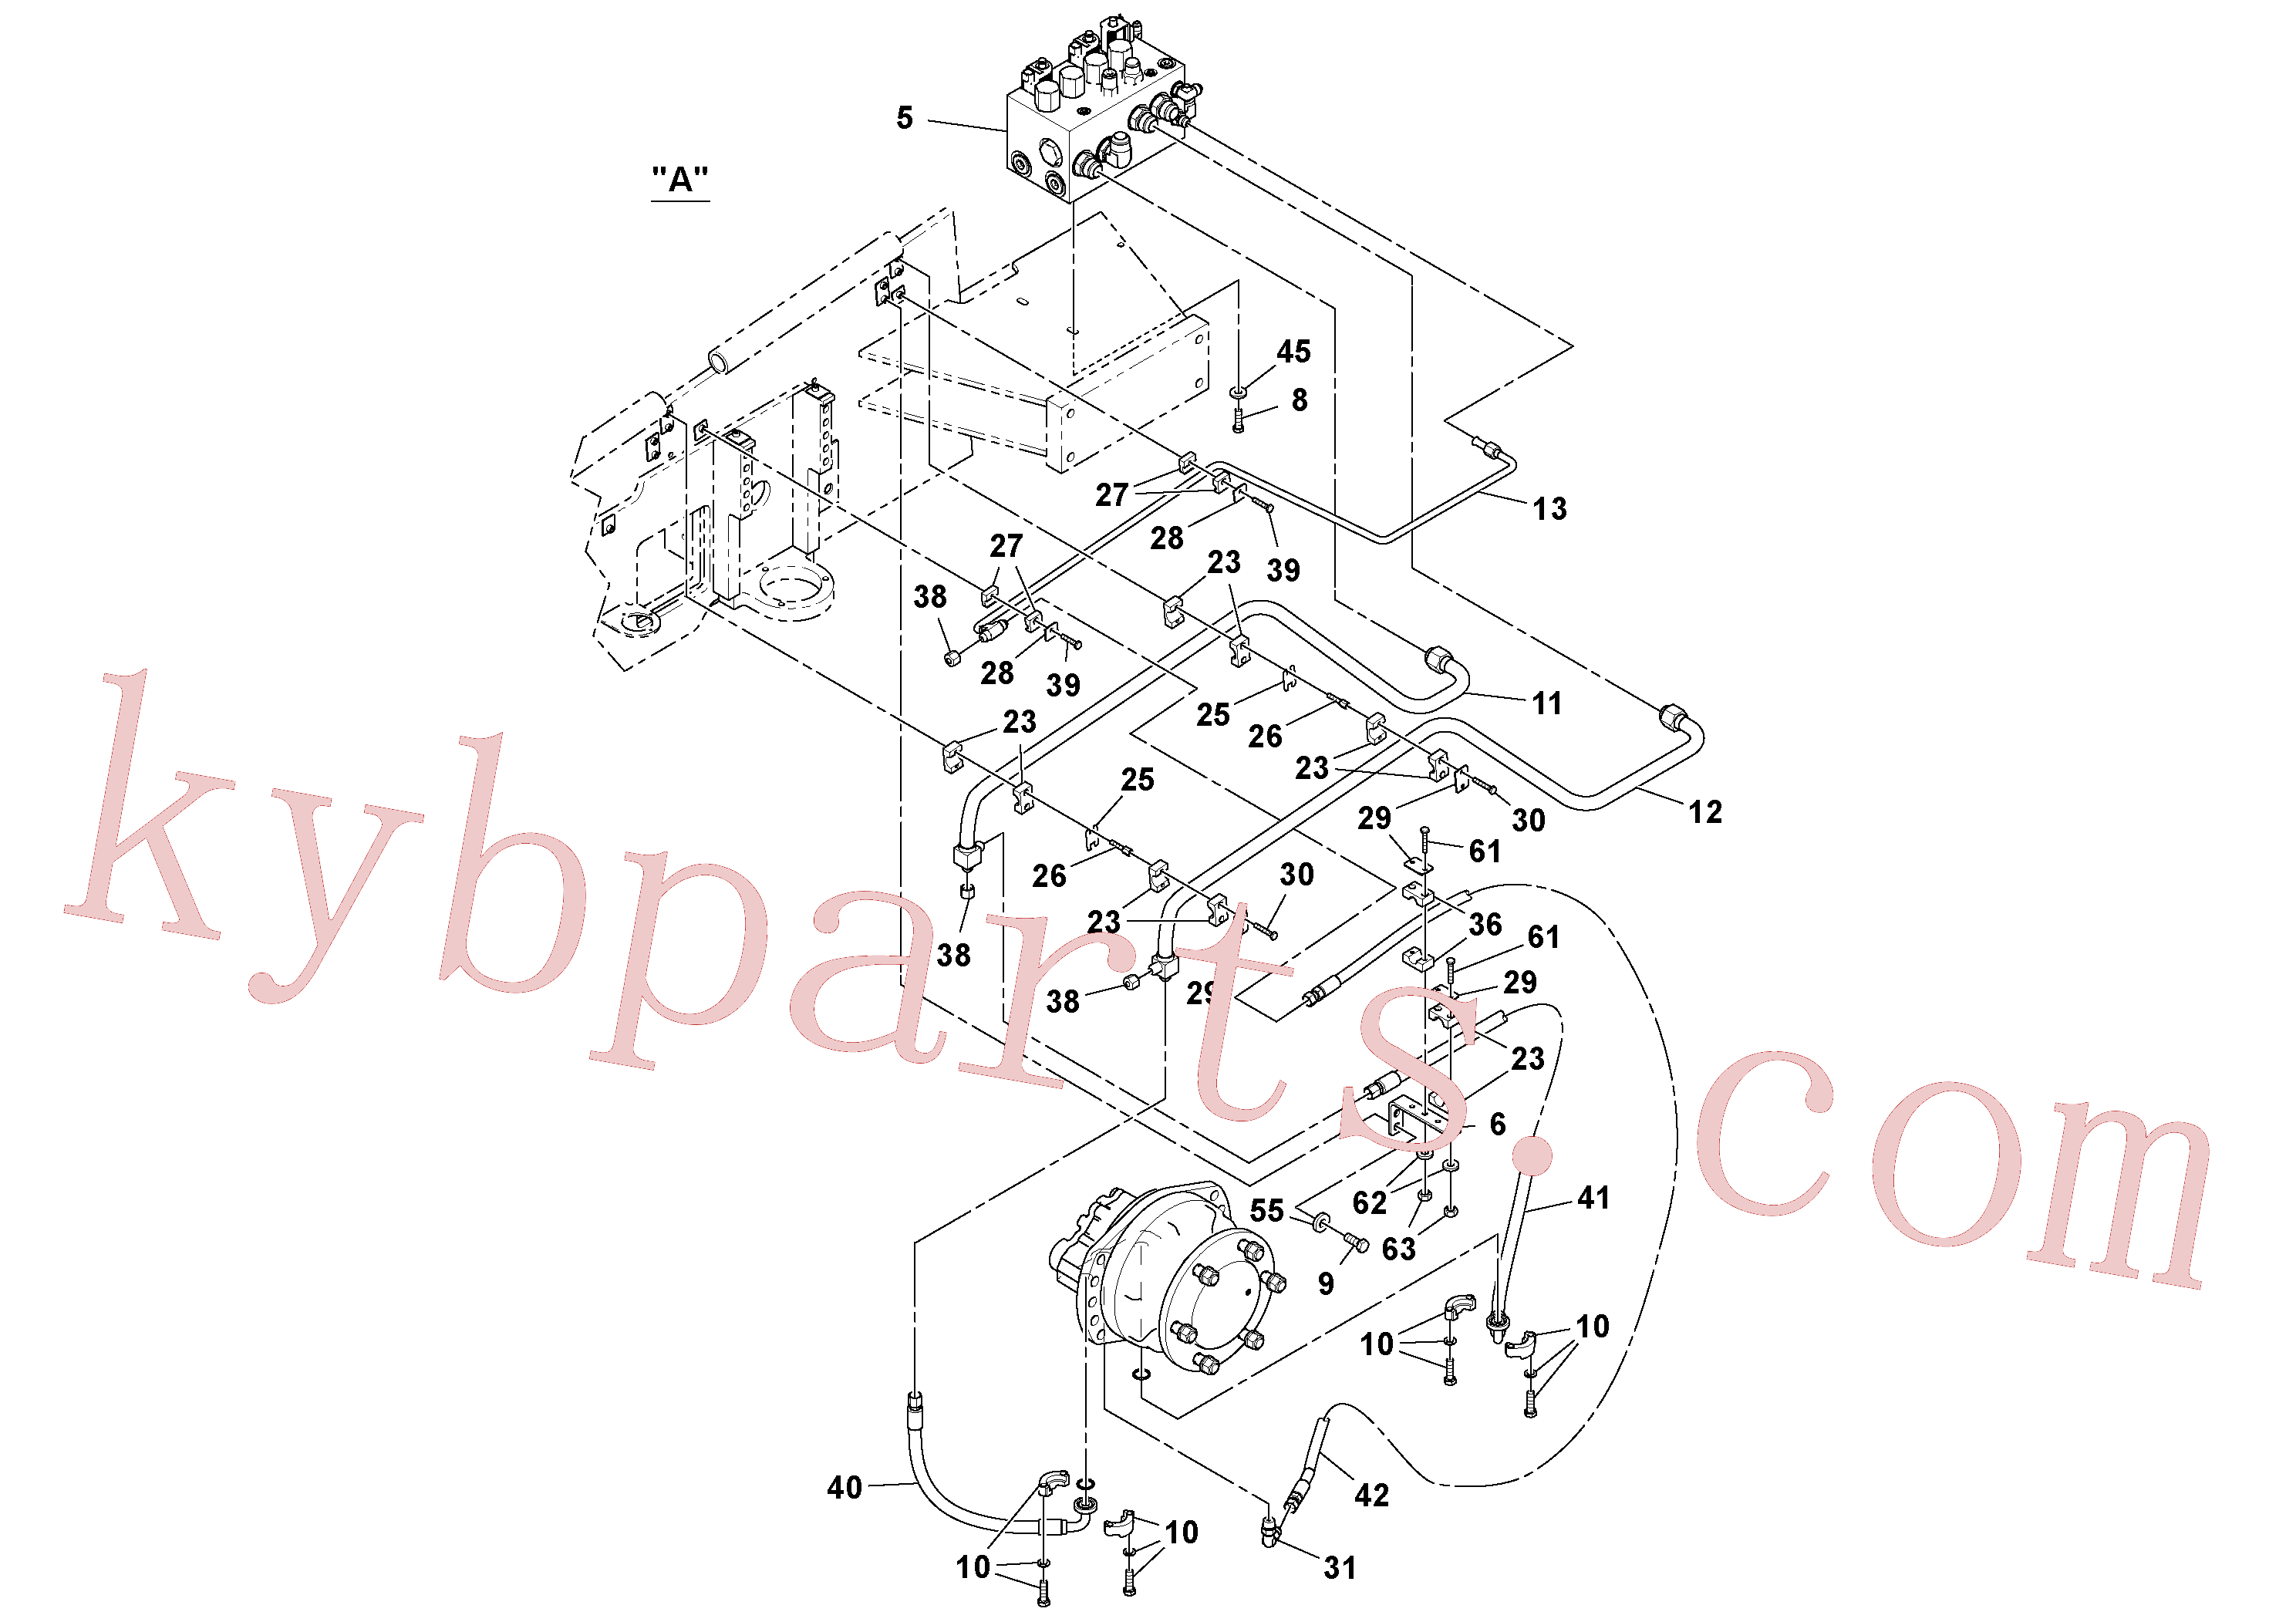 VOE955893 for Volvo Fwa Hydraulic Installation(1038471 assembly)